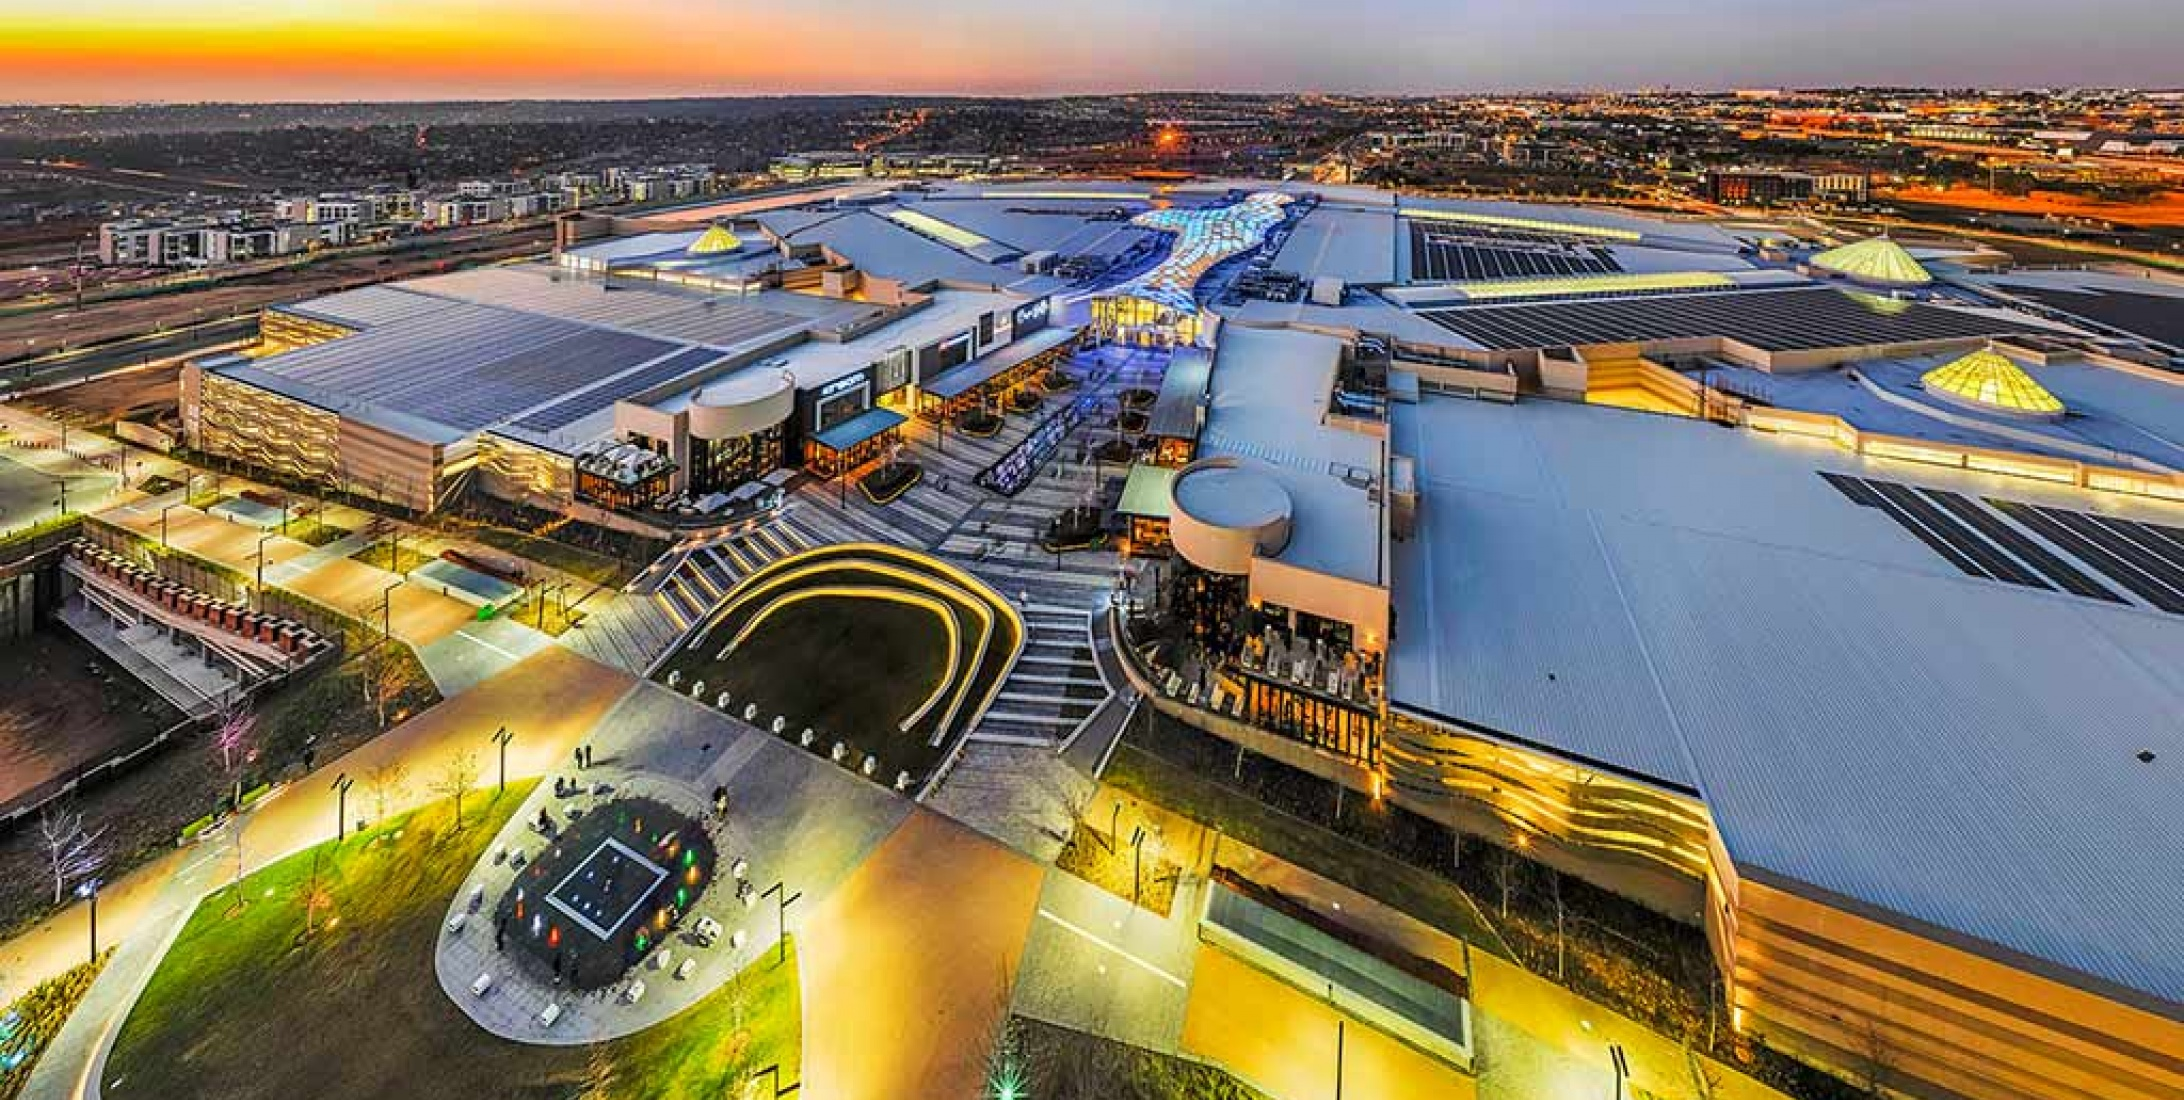 Mall of Africa South Africa | Anolis LED Lighting